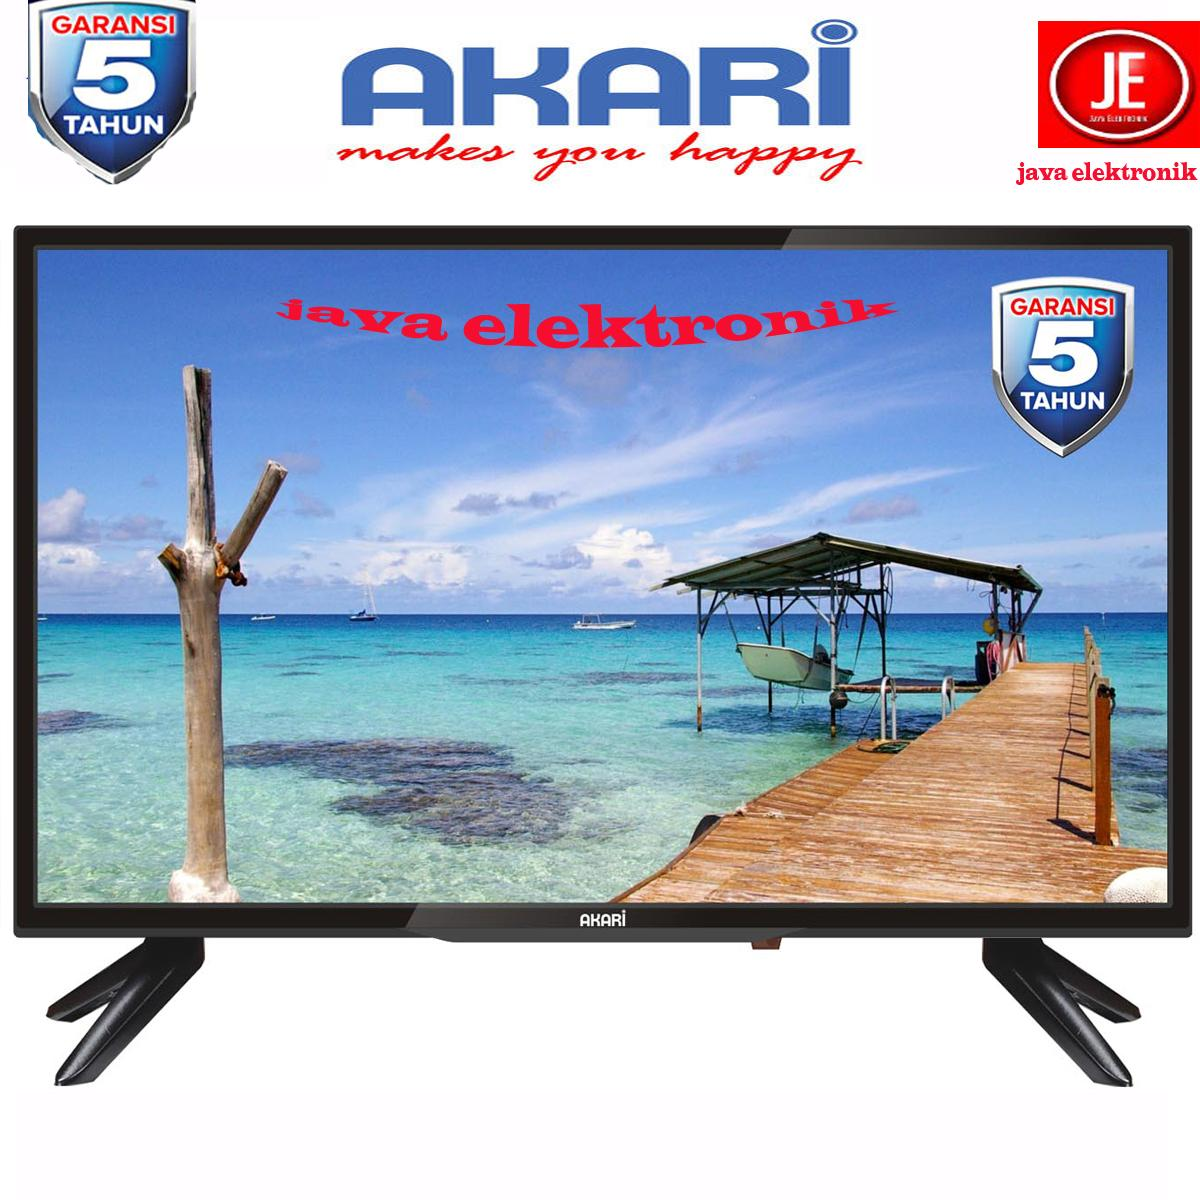 AKARI HD Ready w/ USB Movie LED TV 32 - 32V89 - 5 tahun garansi resmi